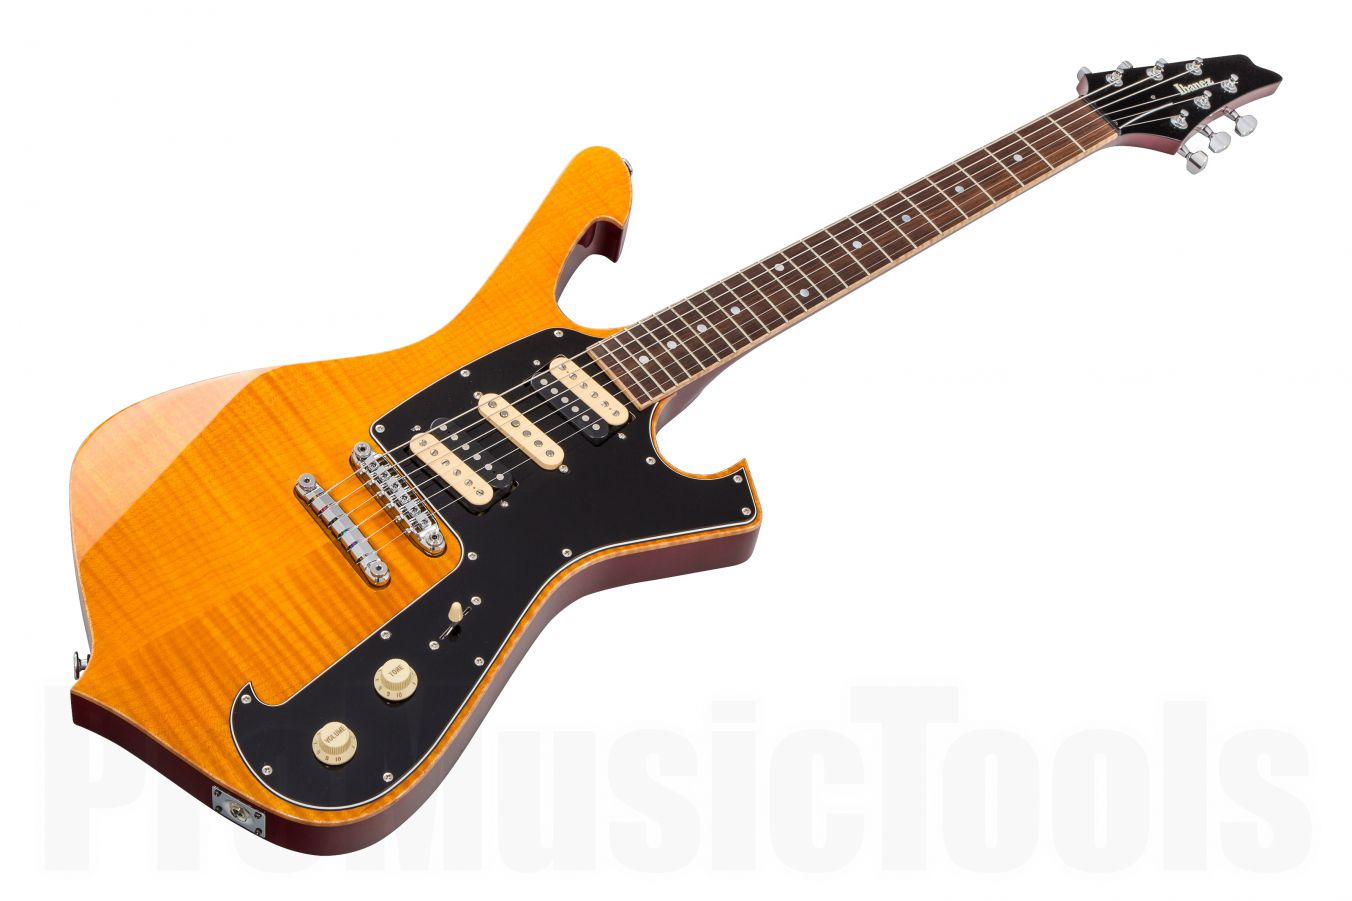 Ibanez FRM25 Fireman - Paul Gilbert Signature - 25th Anniversary Limited Edition